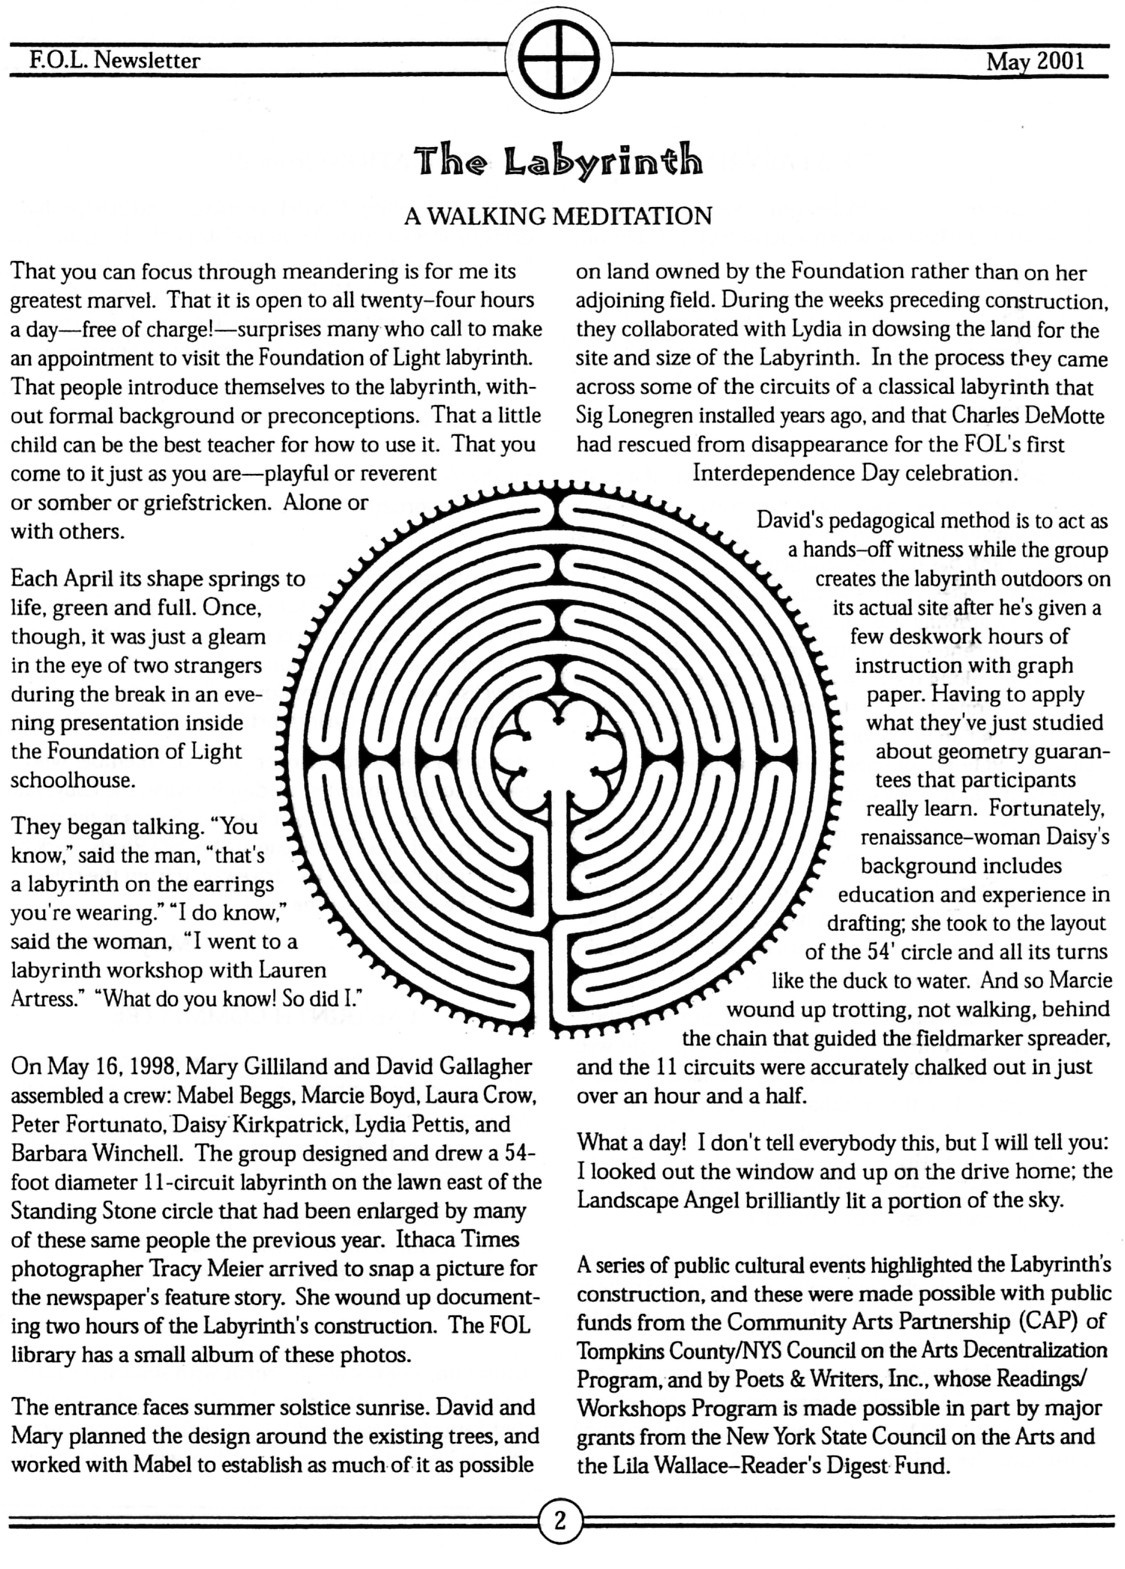 Mary Gillilands Webpage Writings How To Make A Classical 5 Circuit Labyrinth From Meander